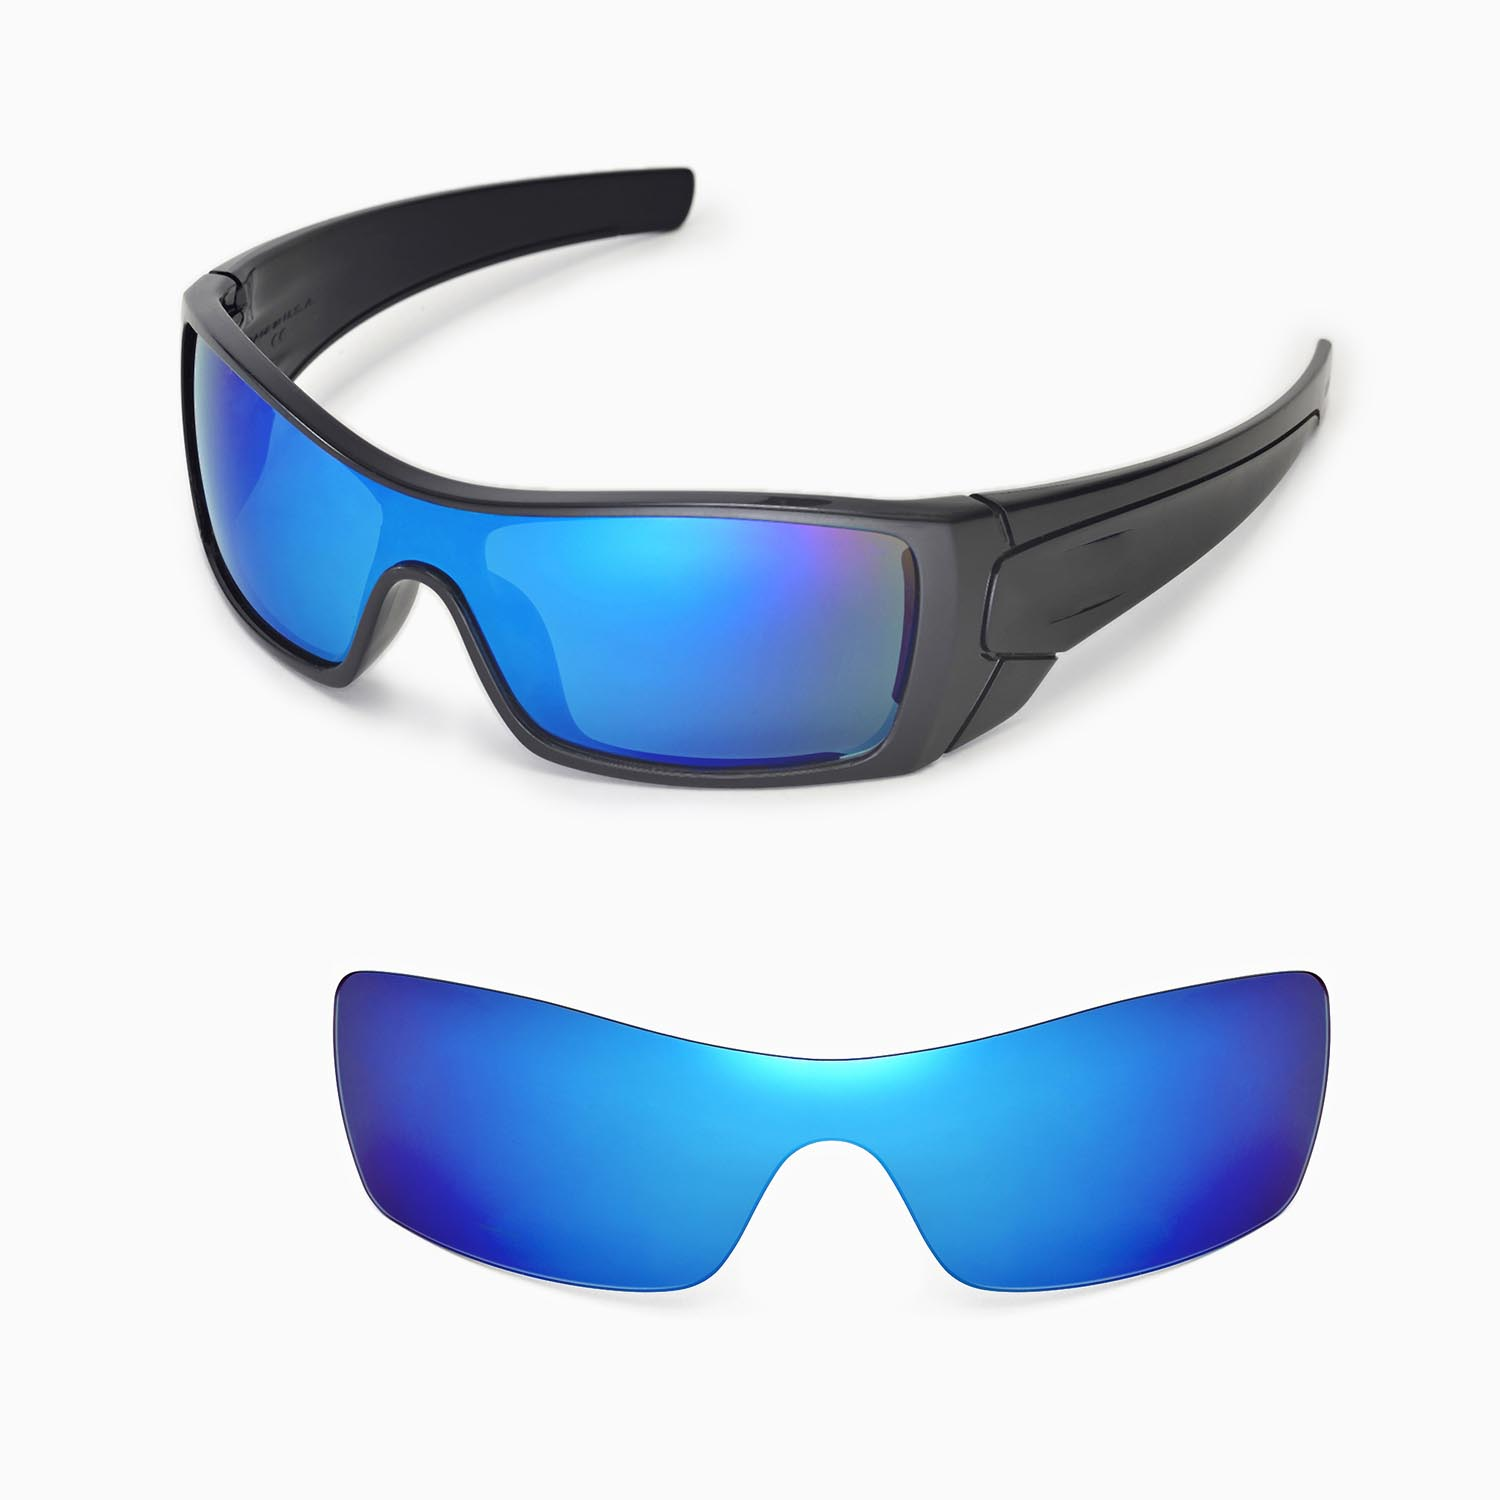 f235d3b088 New Walleva Polarized Ice Blue Replacement Lenses For Oakley Batwolf  Sunglasses 608729251446